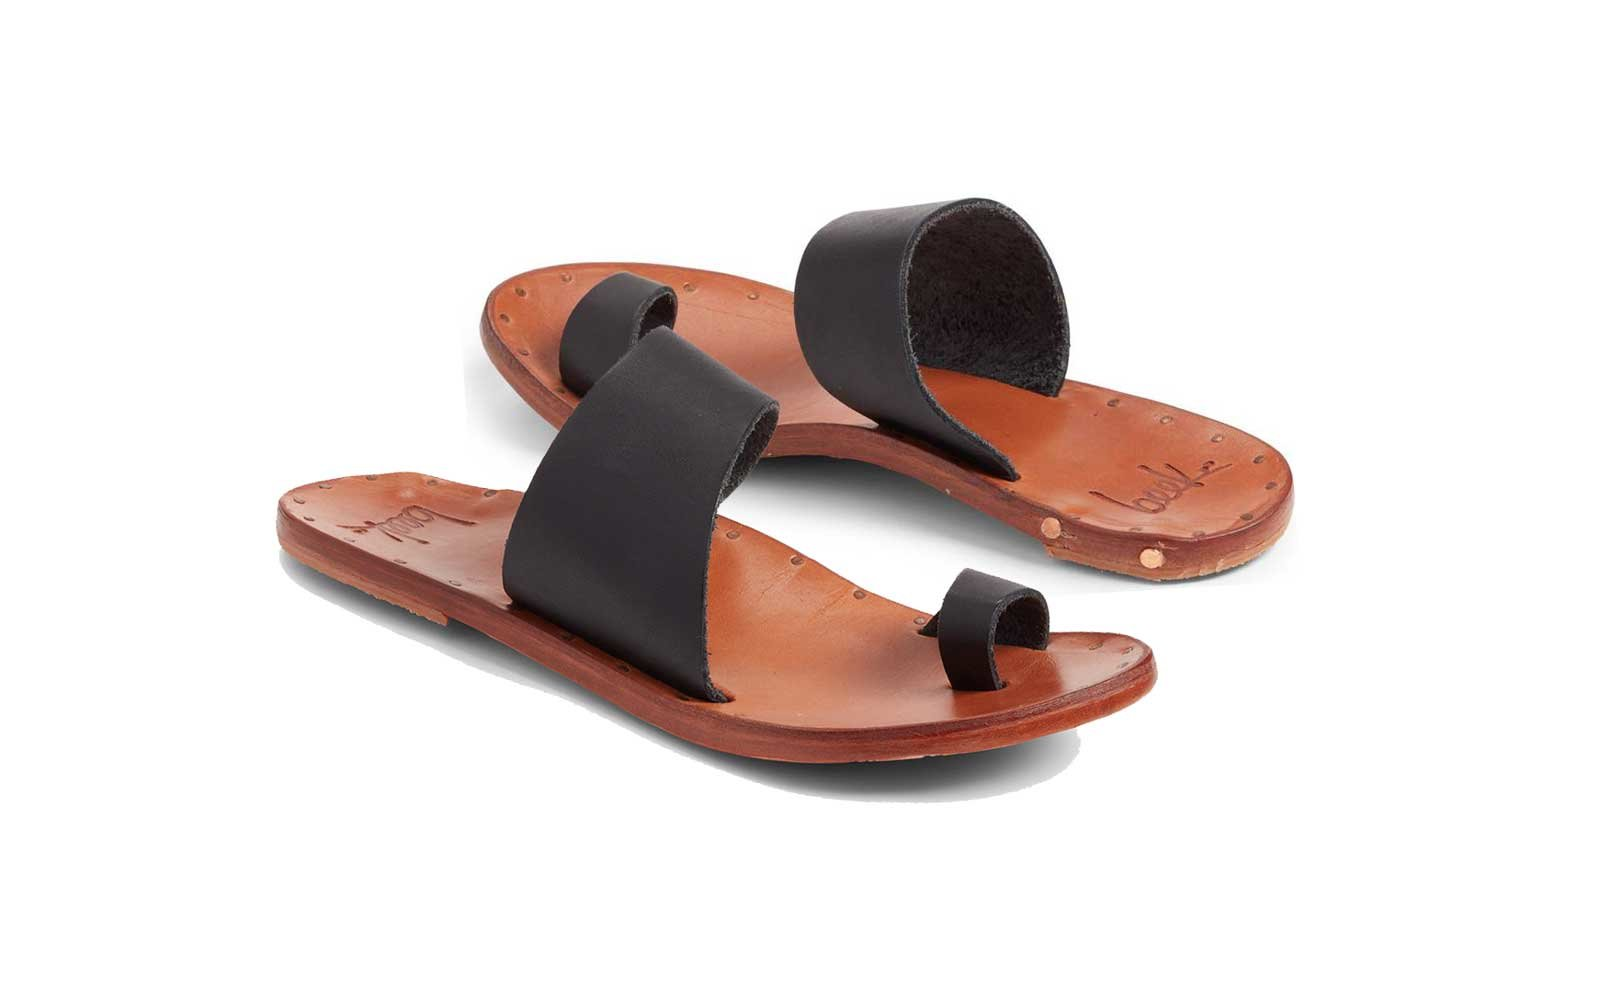 104440293ab0 Supported Slides  Beek  Finch  Sandal. beek womens comfortable walking  sandals. Courtesy of Nordstrom